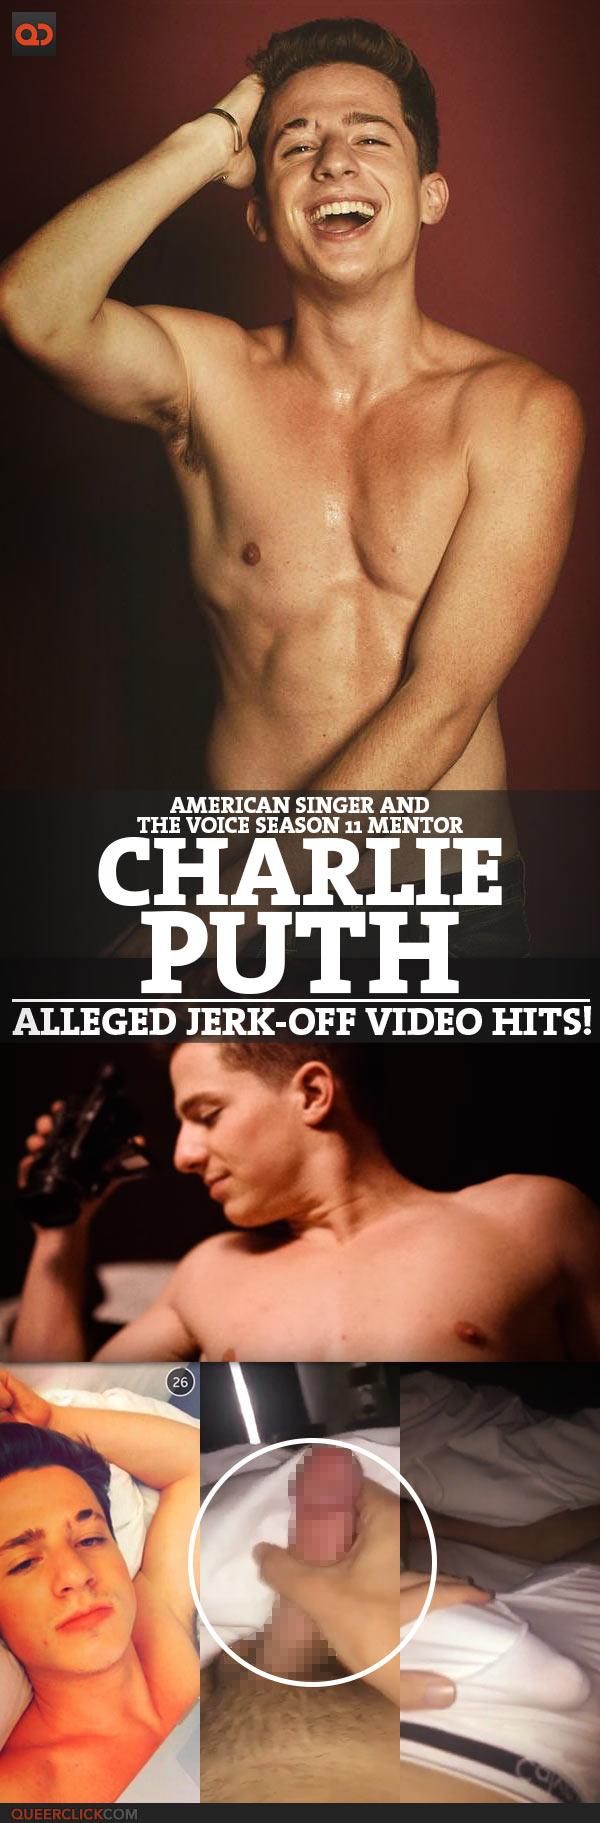 Charlie Puth, American Singer And The Voice Season 11 Mentor, Alleged Jerk-Off Video Hits!